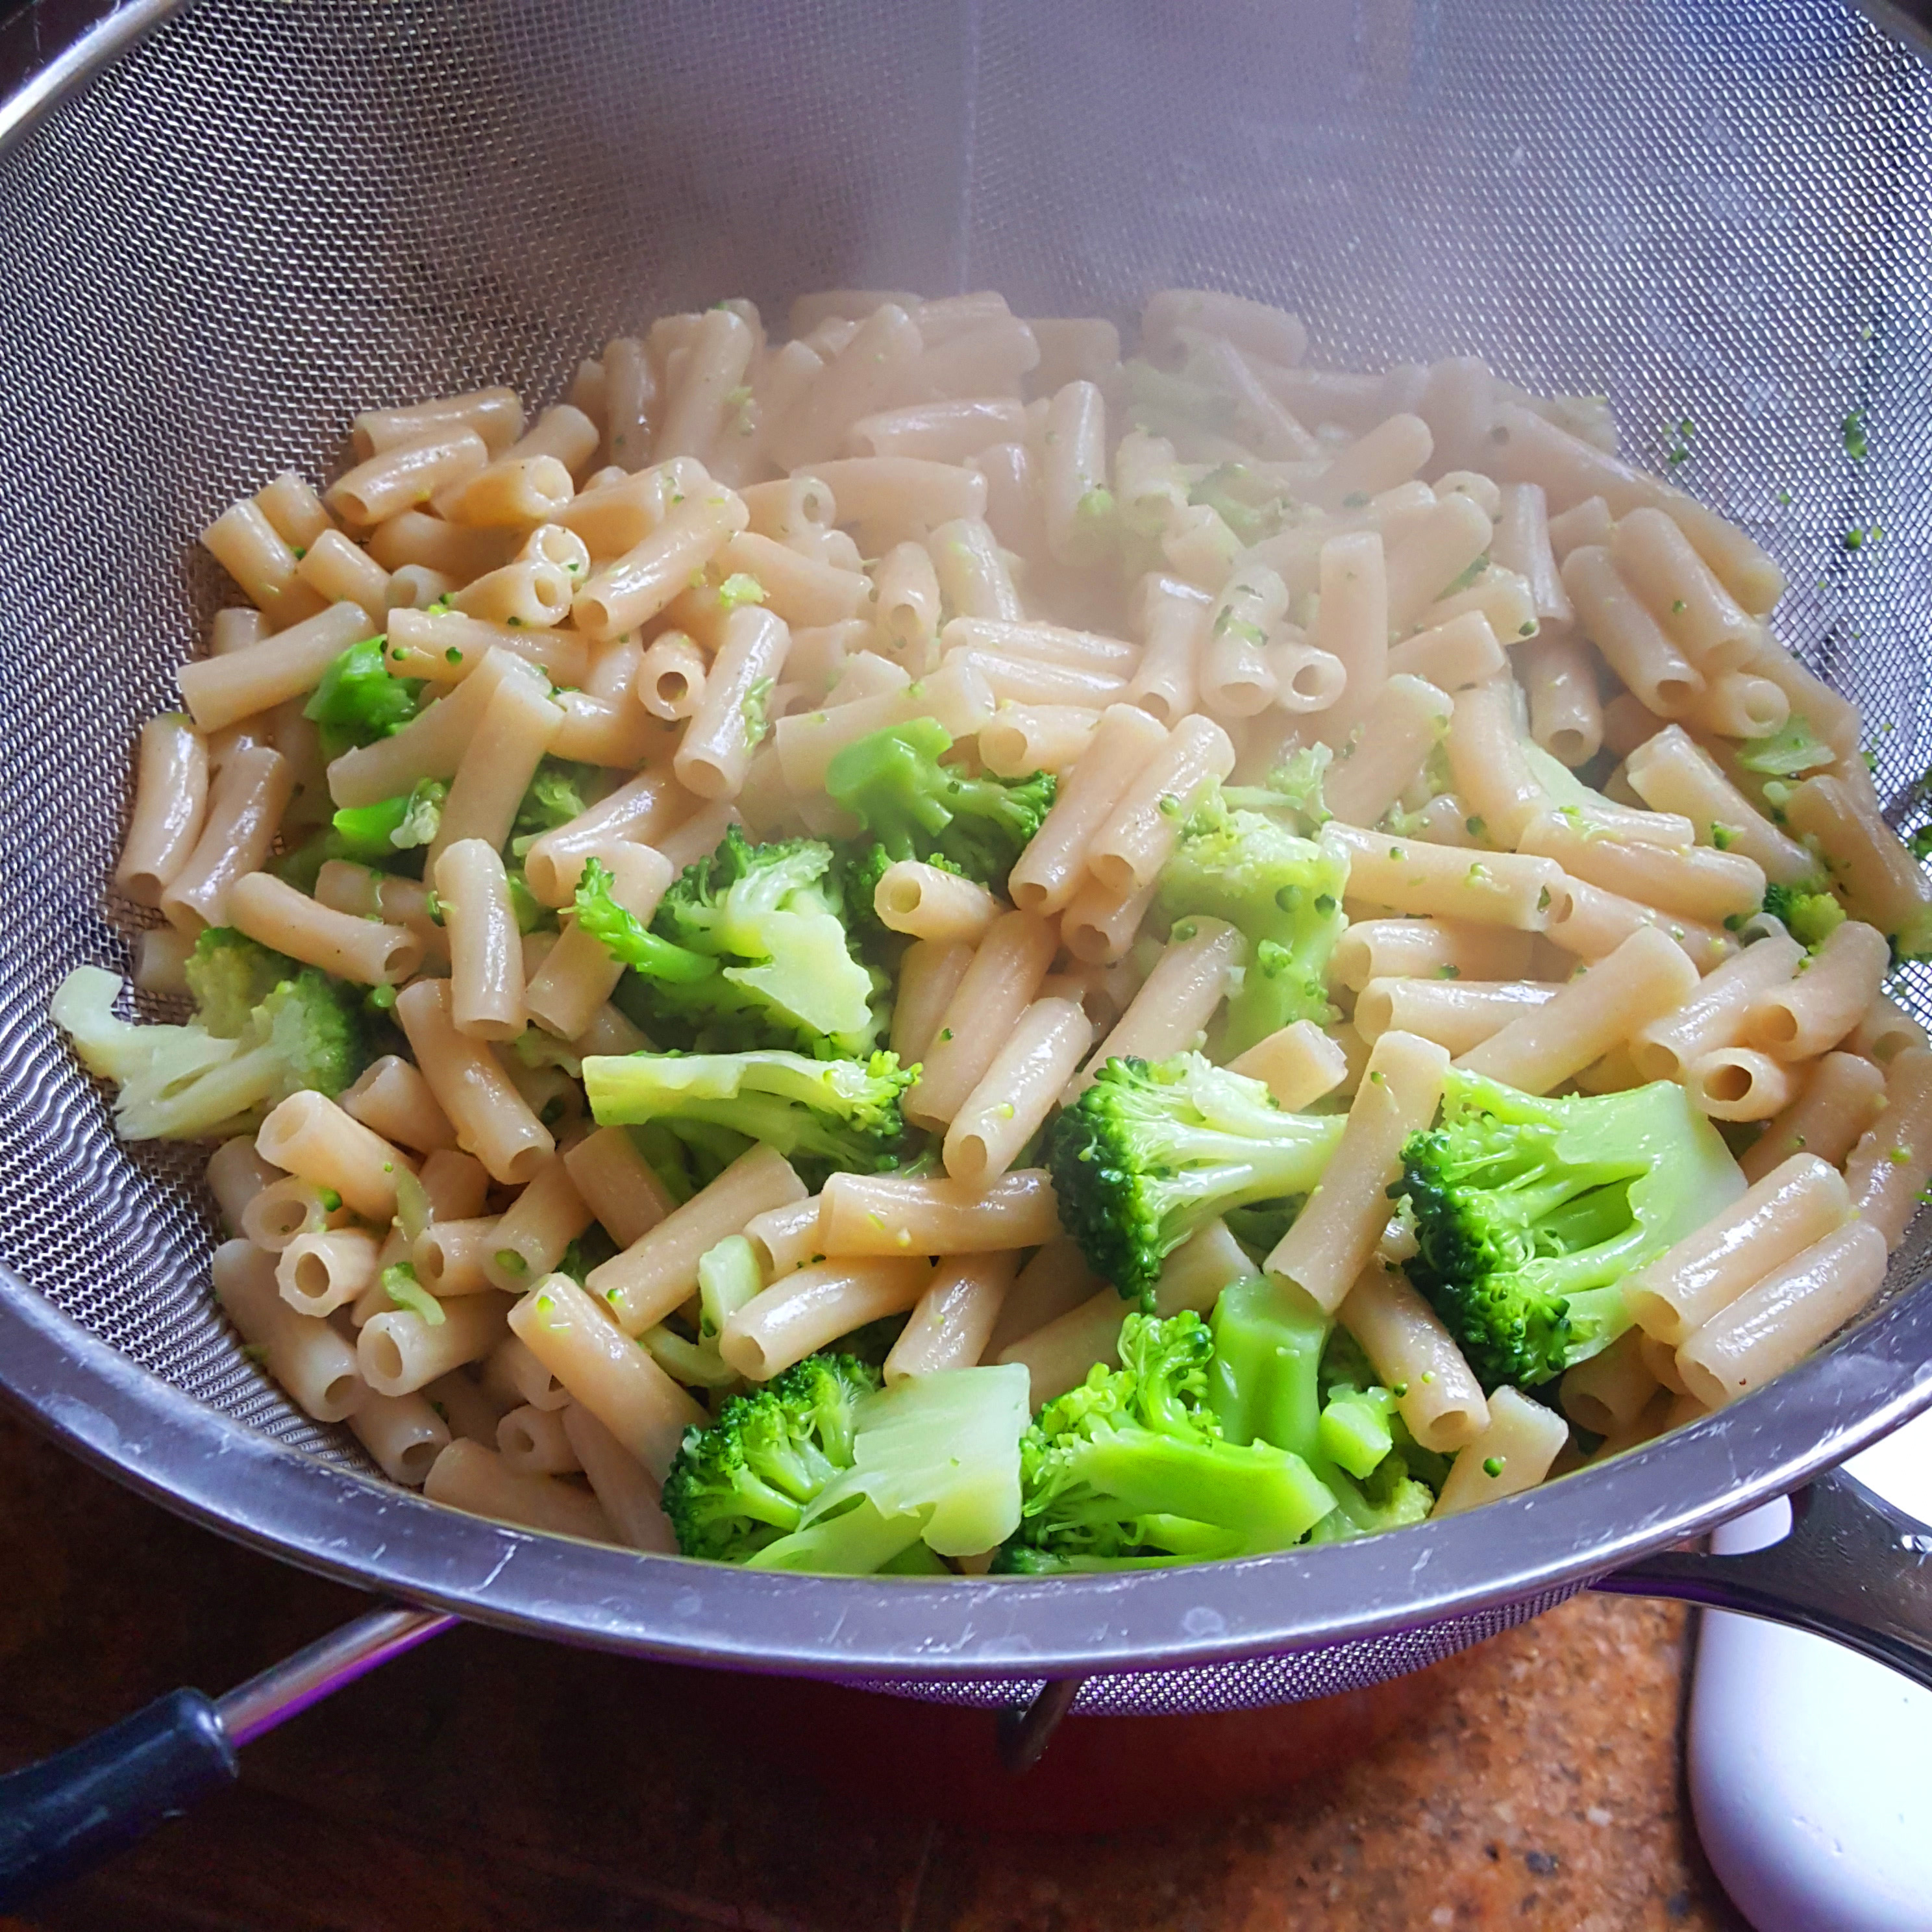 Pasta Broccoli in Colinder